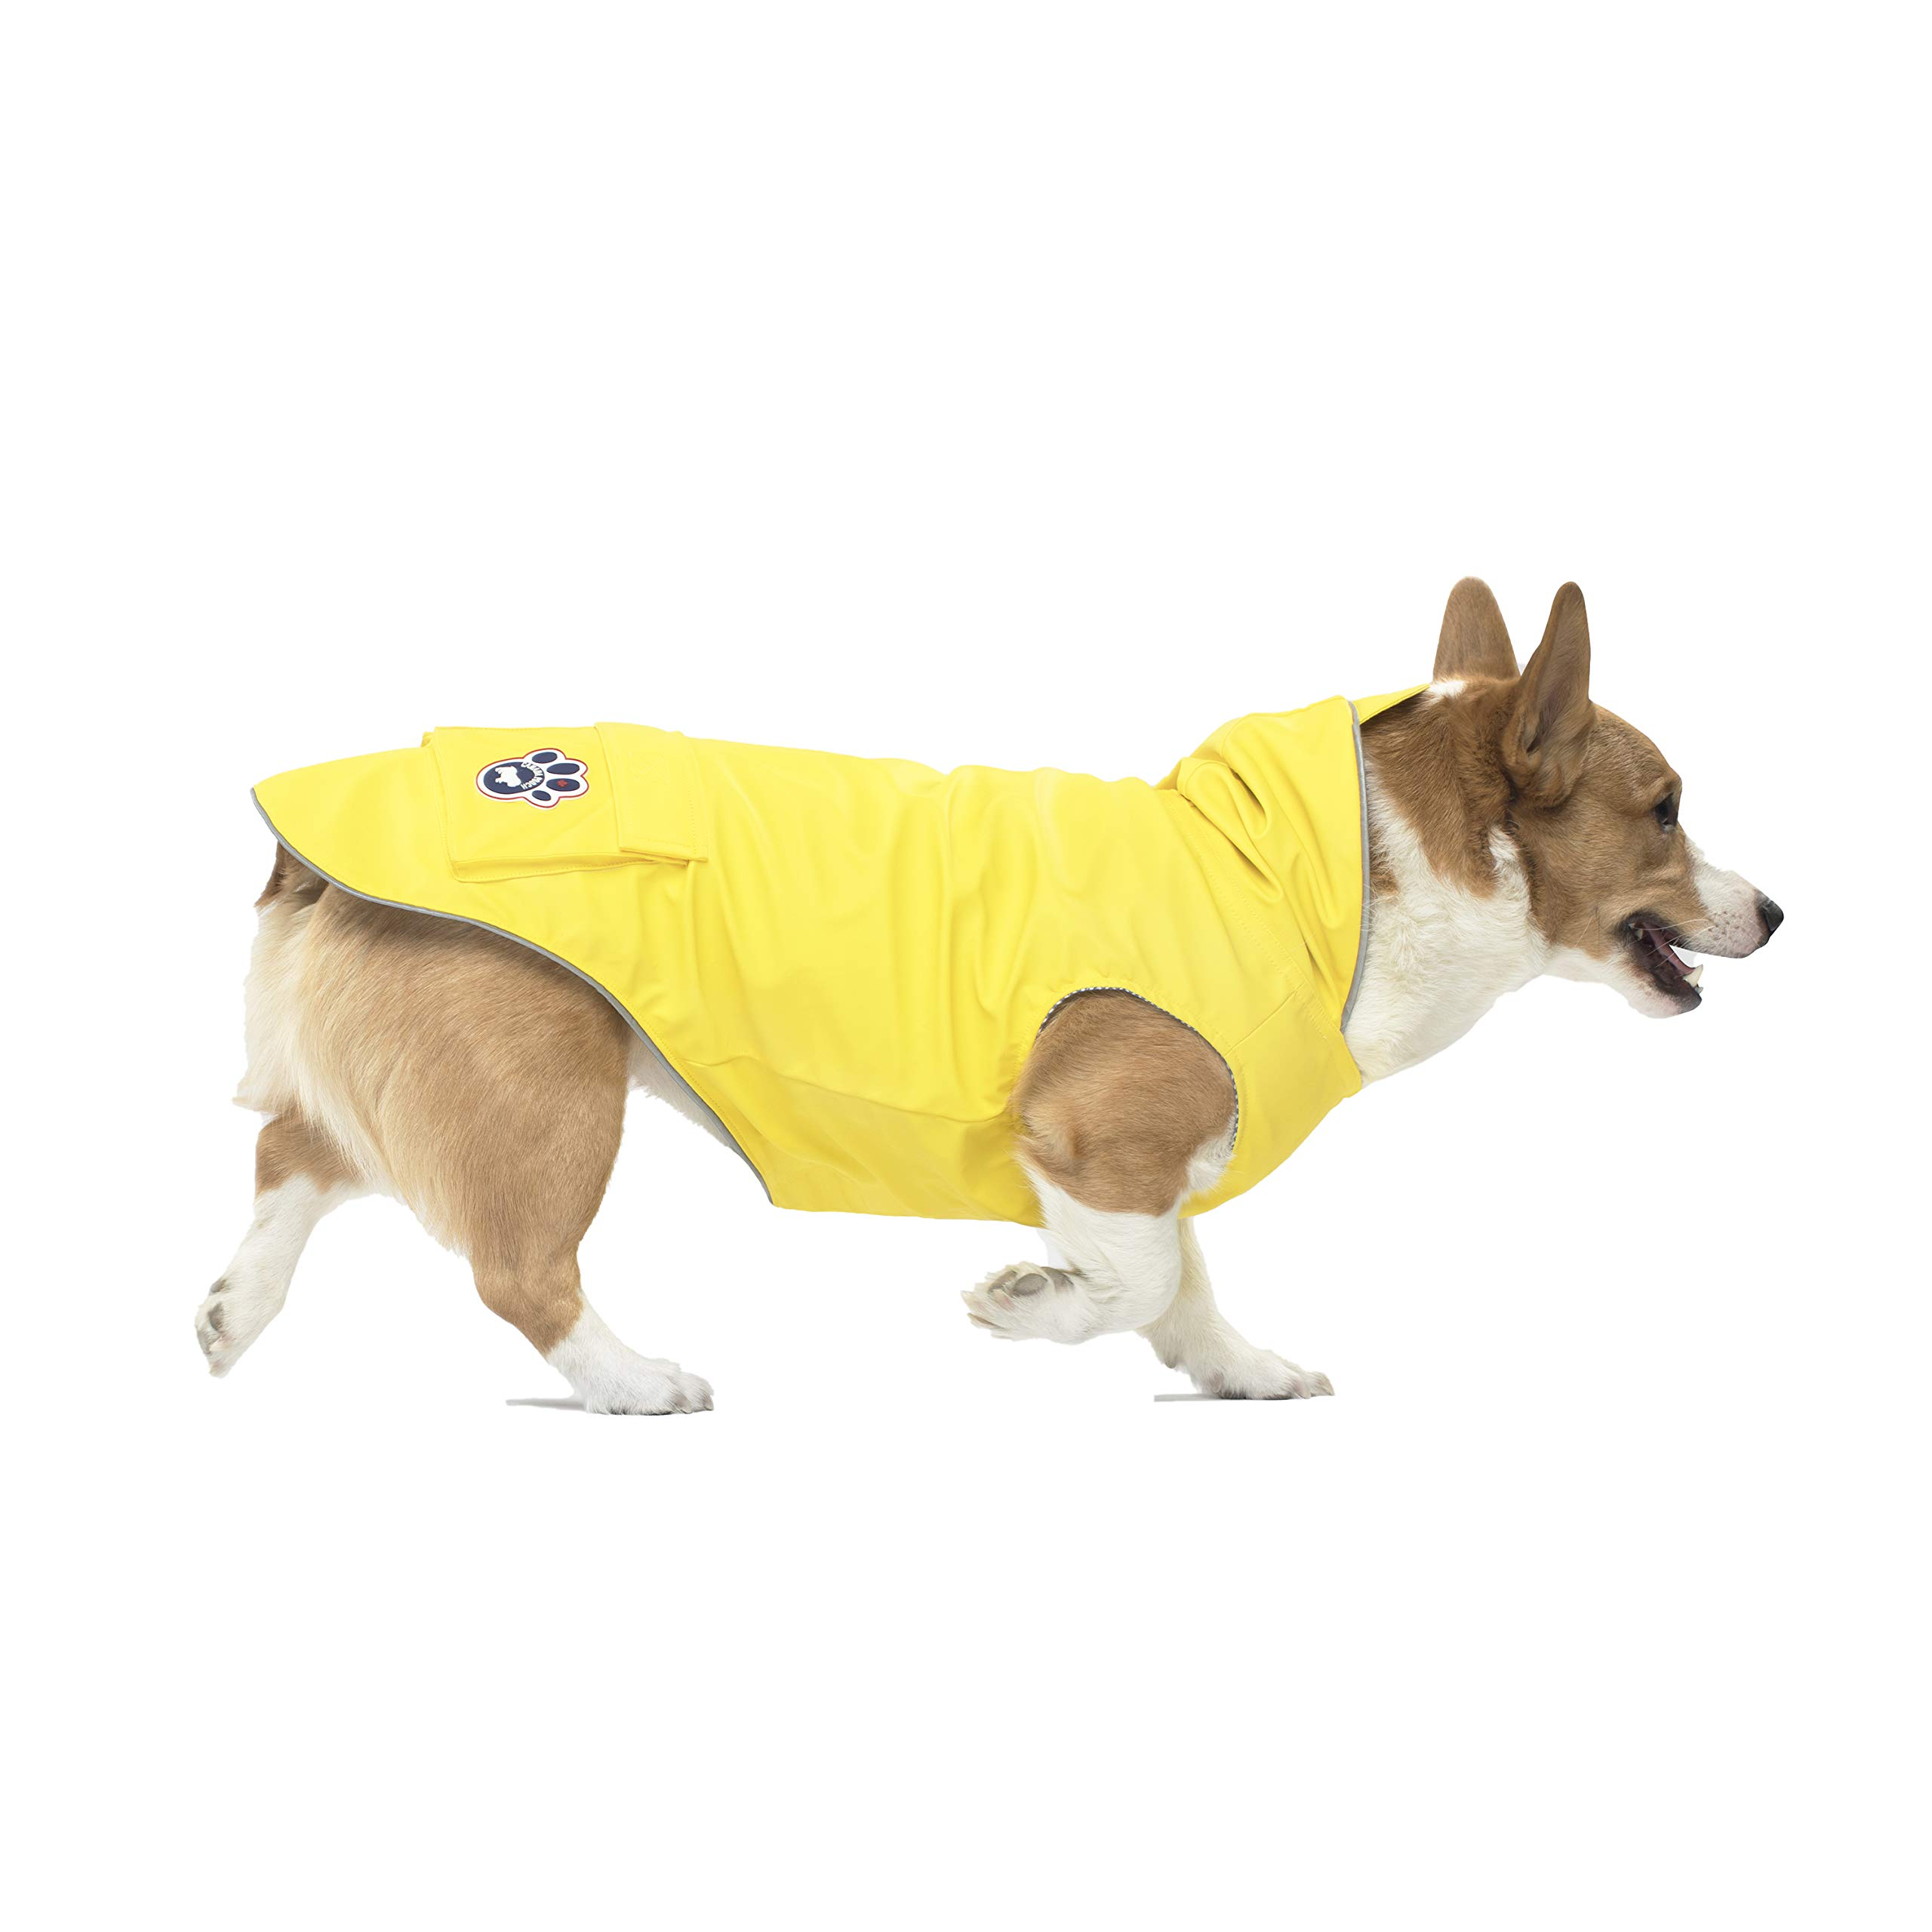 Canada Pooch Torrential Tracker, Yellow, Size 18 by Canada Pooch